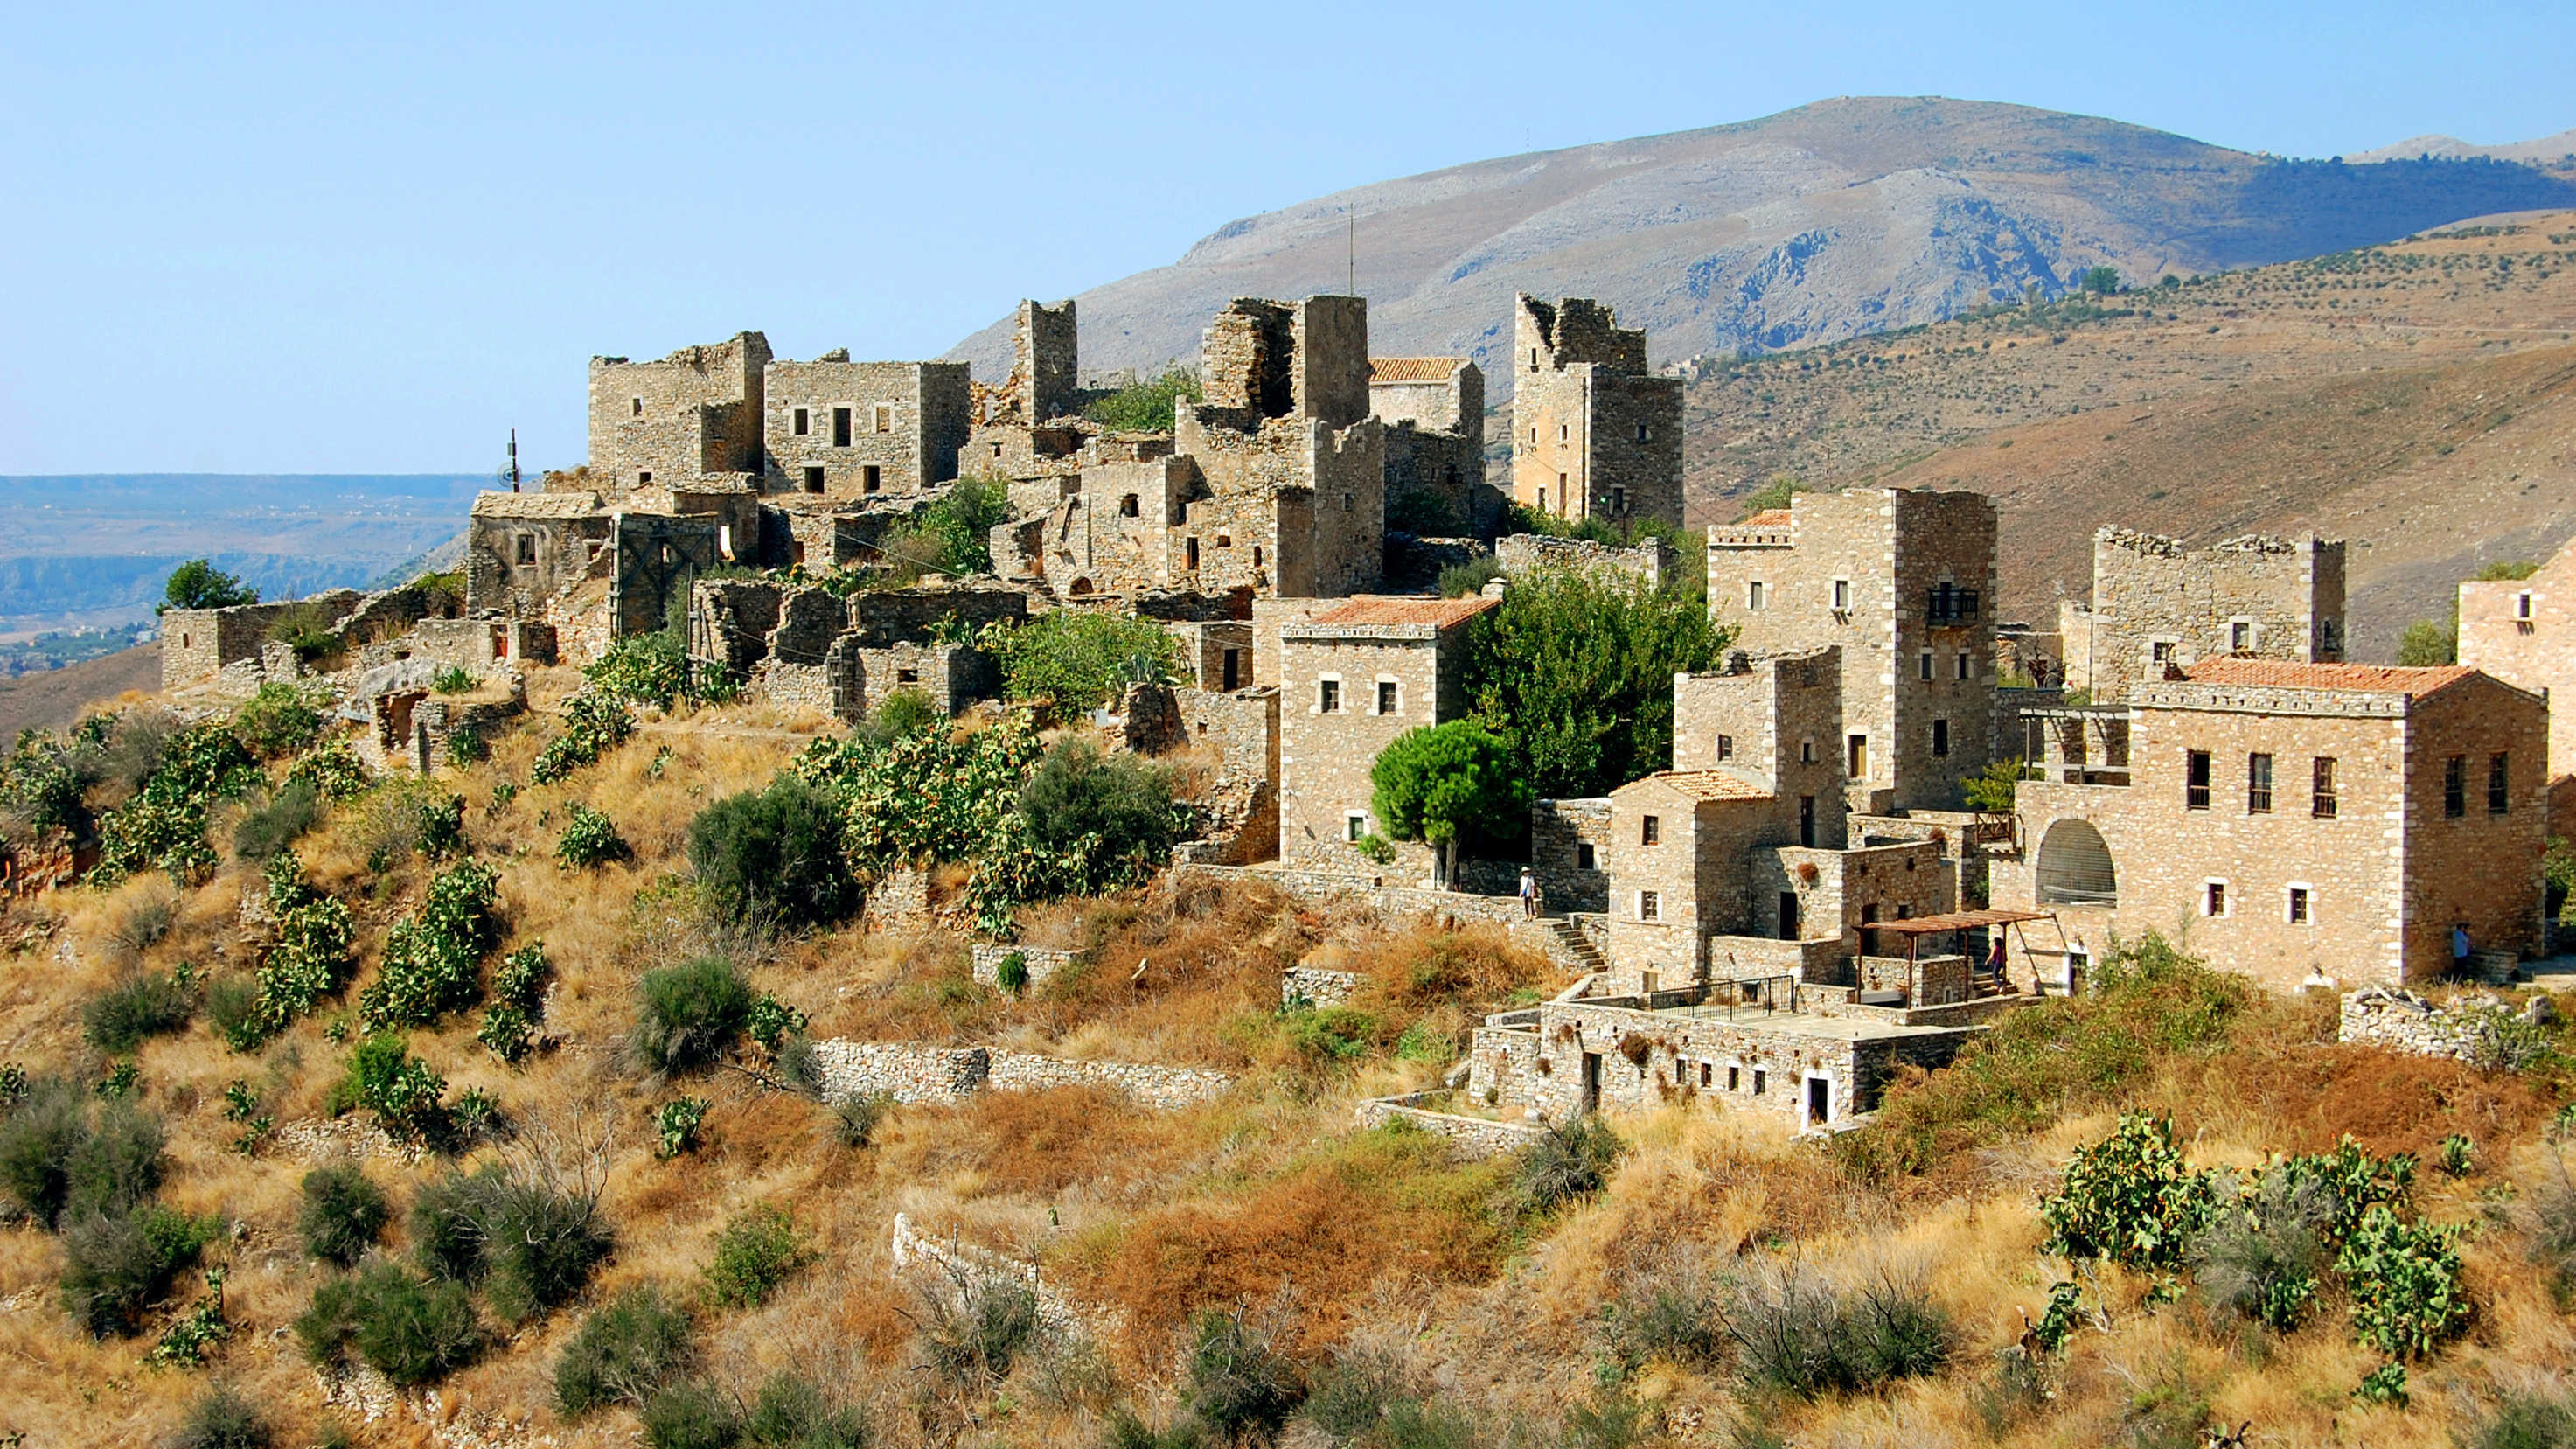 Vathia's deserted, fortified houses